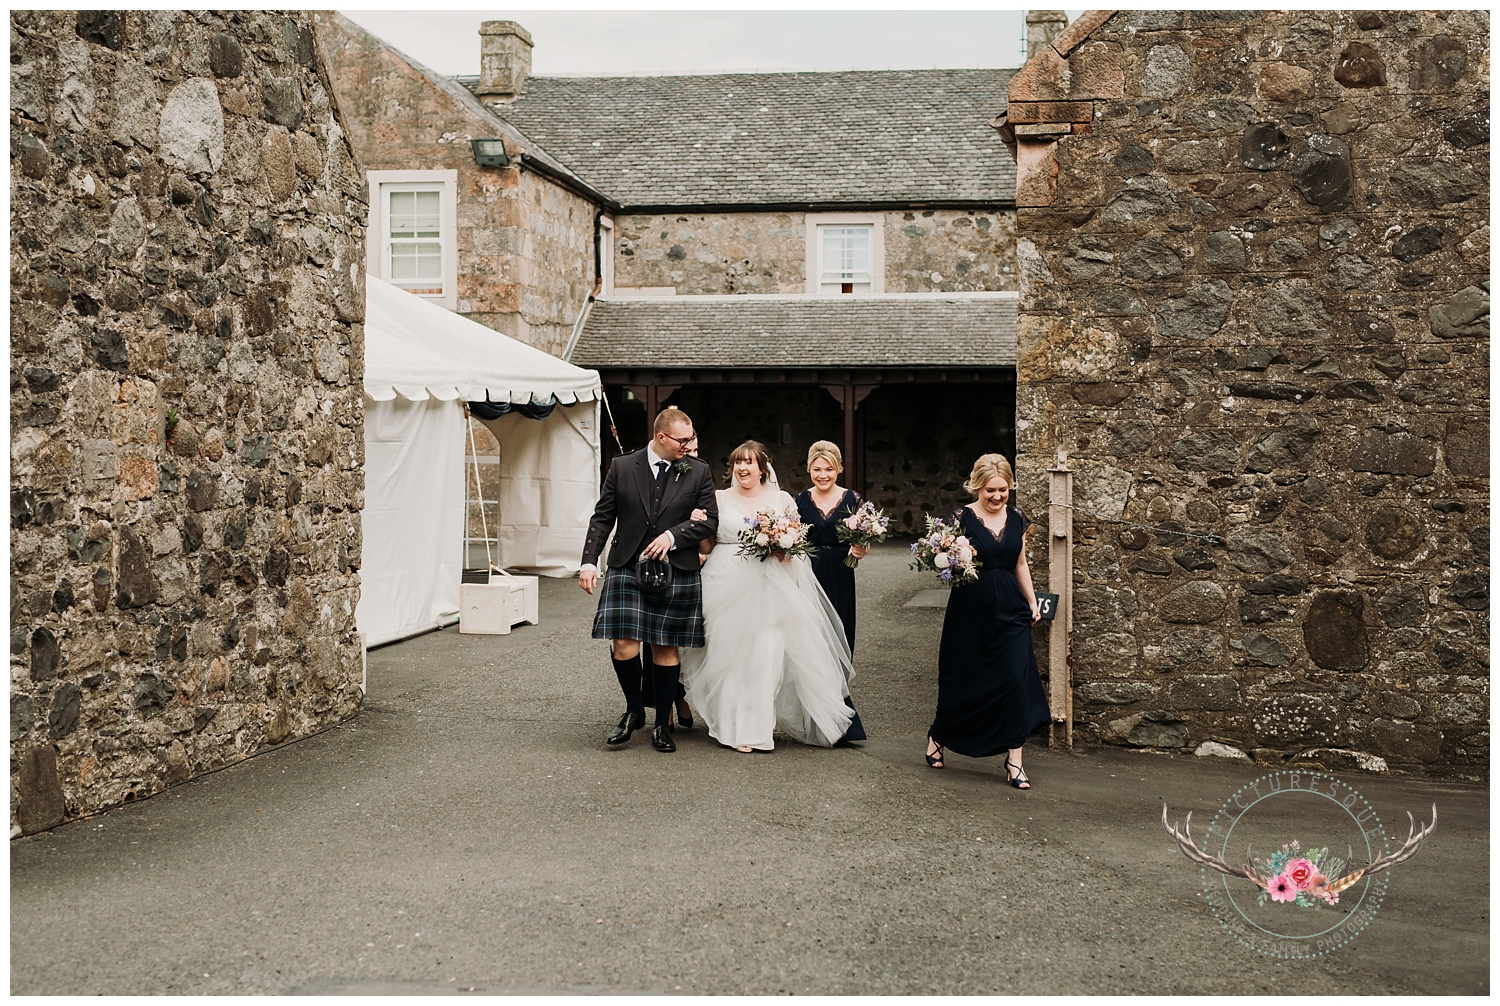 The Barn at Dalduff Farm, Picturesque, WeddingPhotography, Scotland_0016.jpg